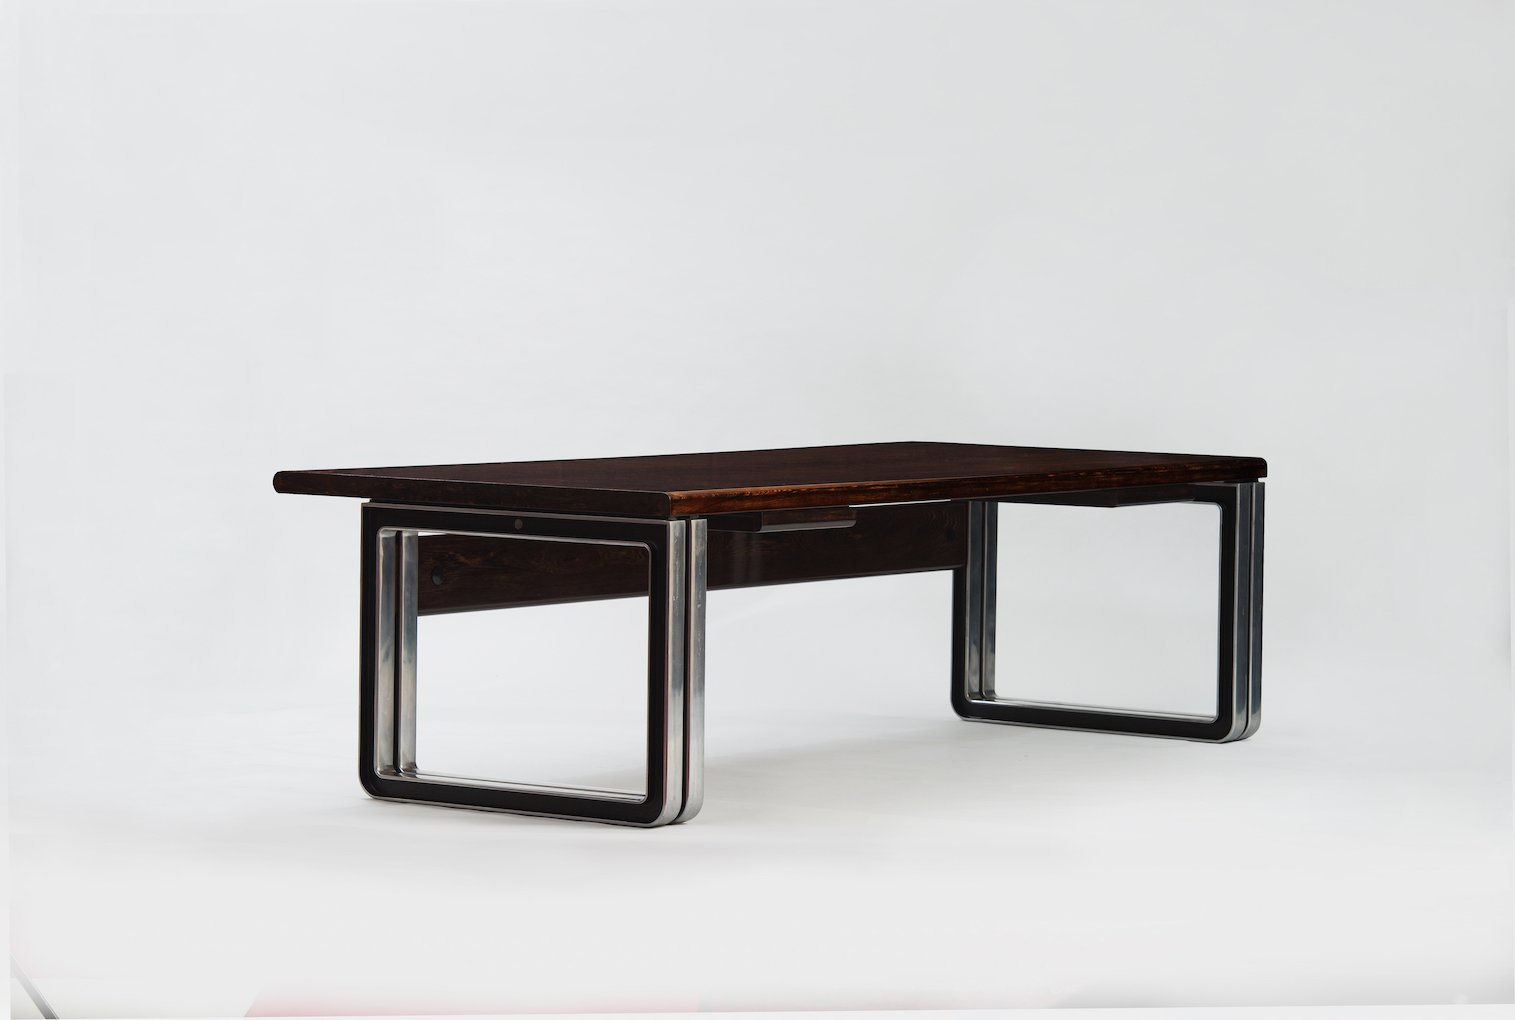 Vintage Wenge Desk by Osvaldo Borsani for Tecno for sale at Pamono